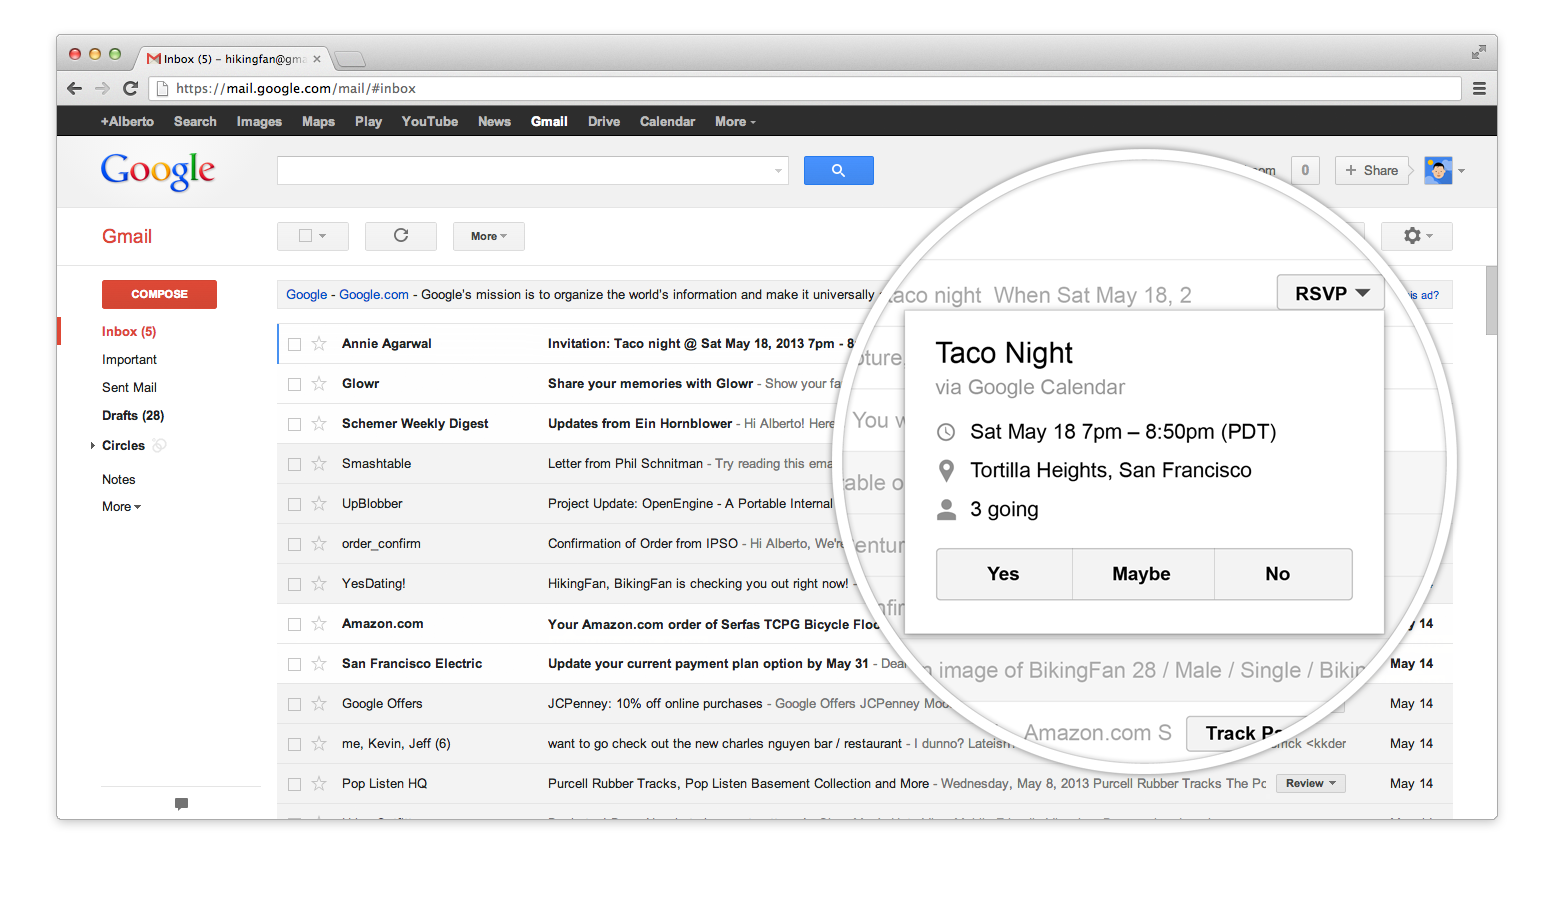 another example google offers is flight confirmation emails when you ...